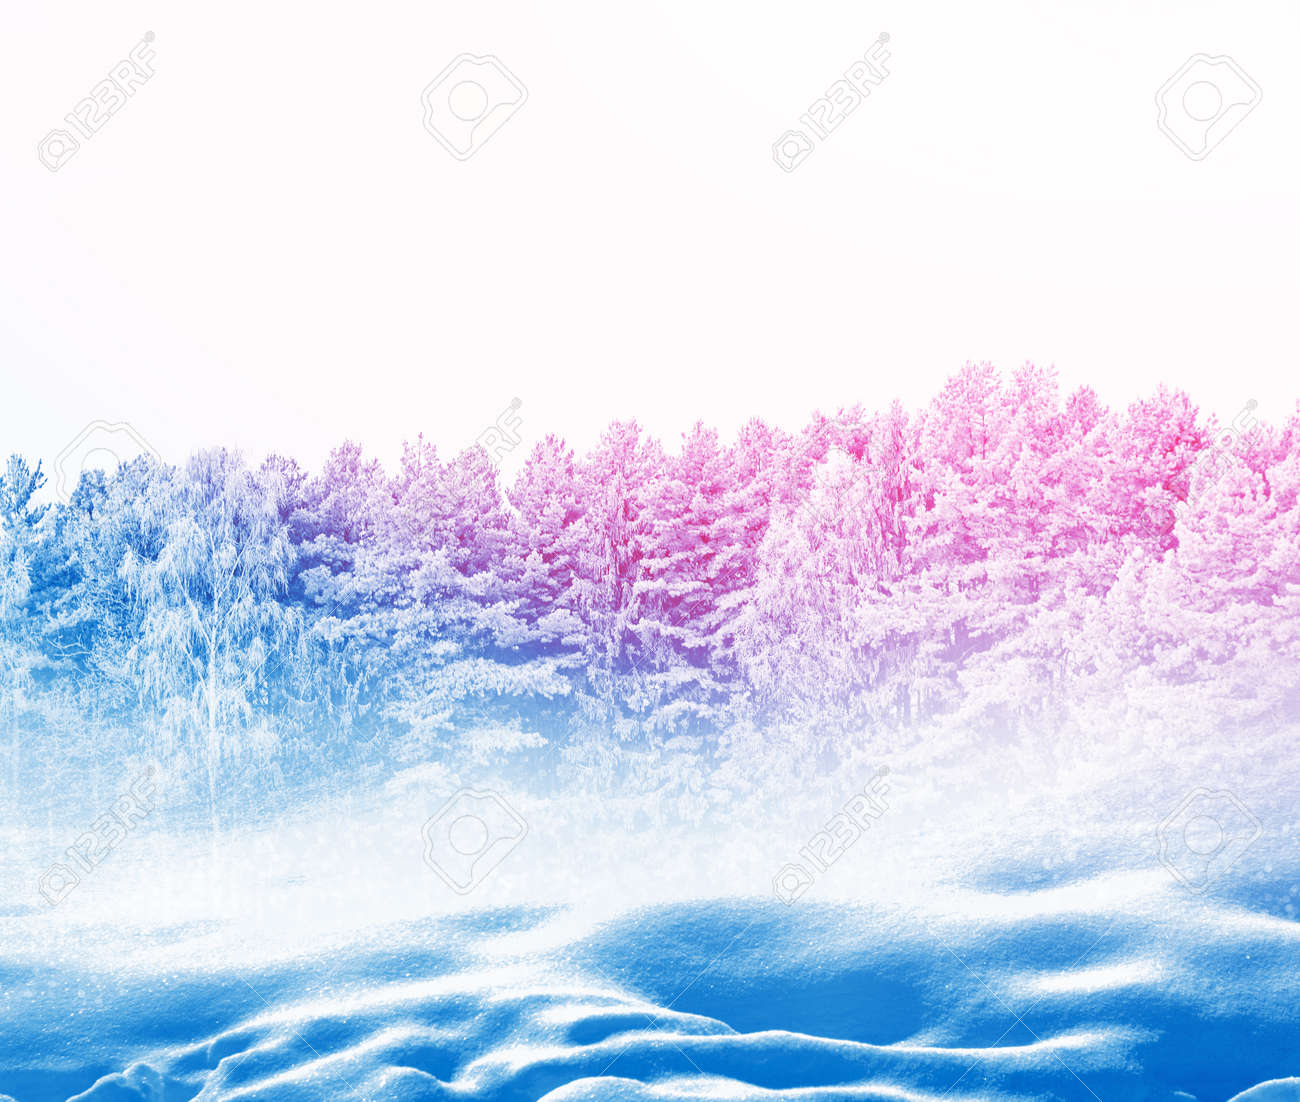 Frozen winter forest with snow covered trees. - 124933984